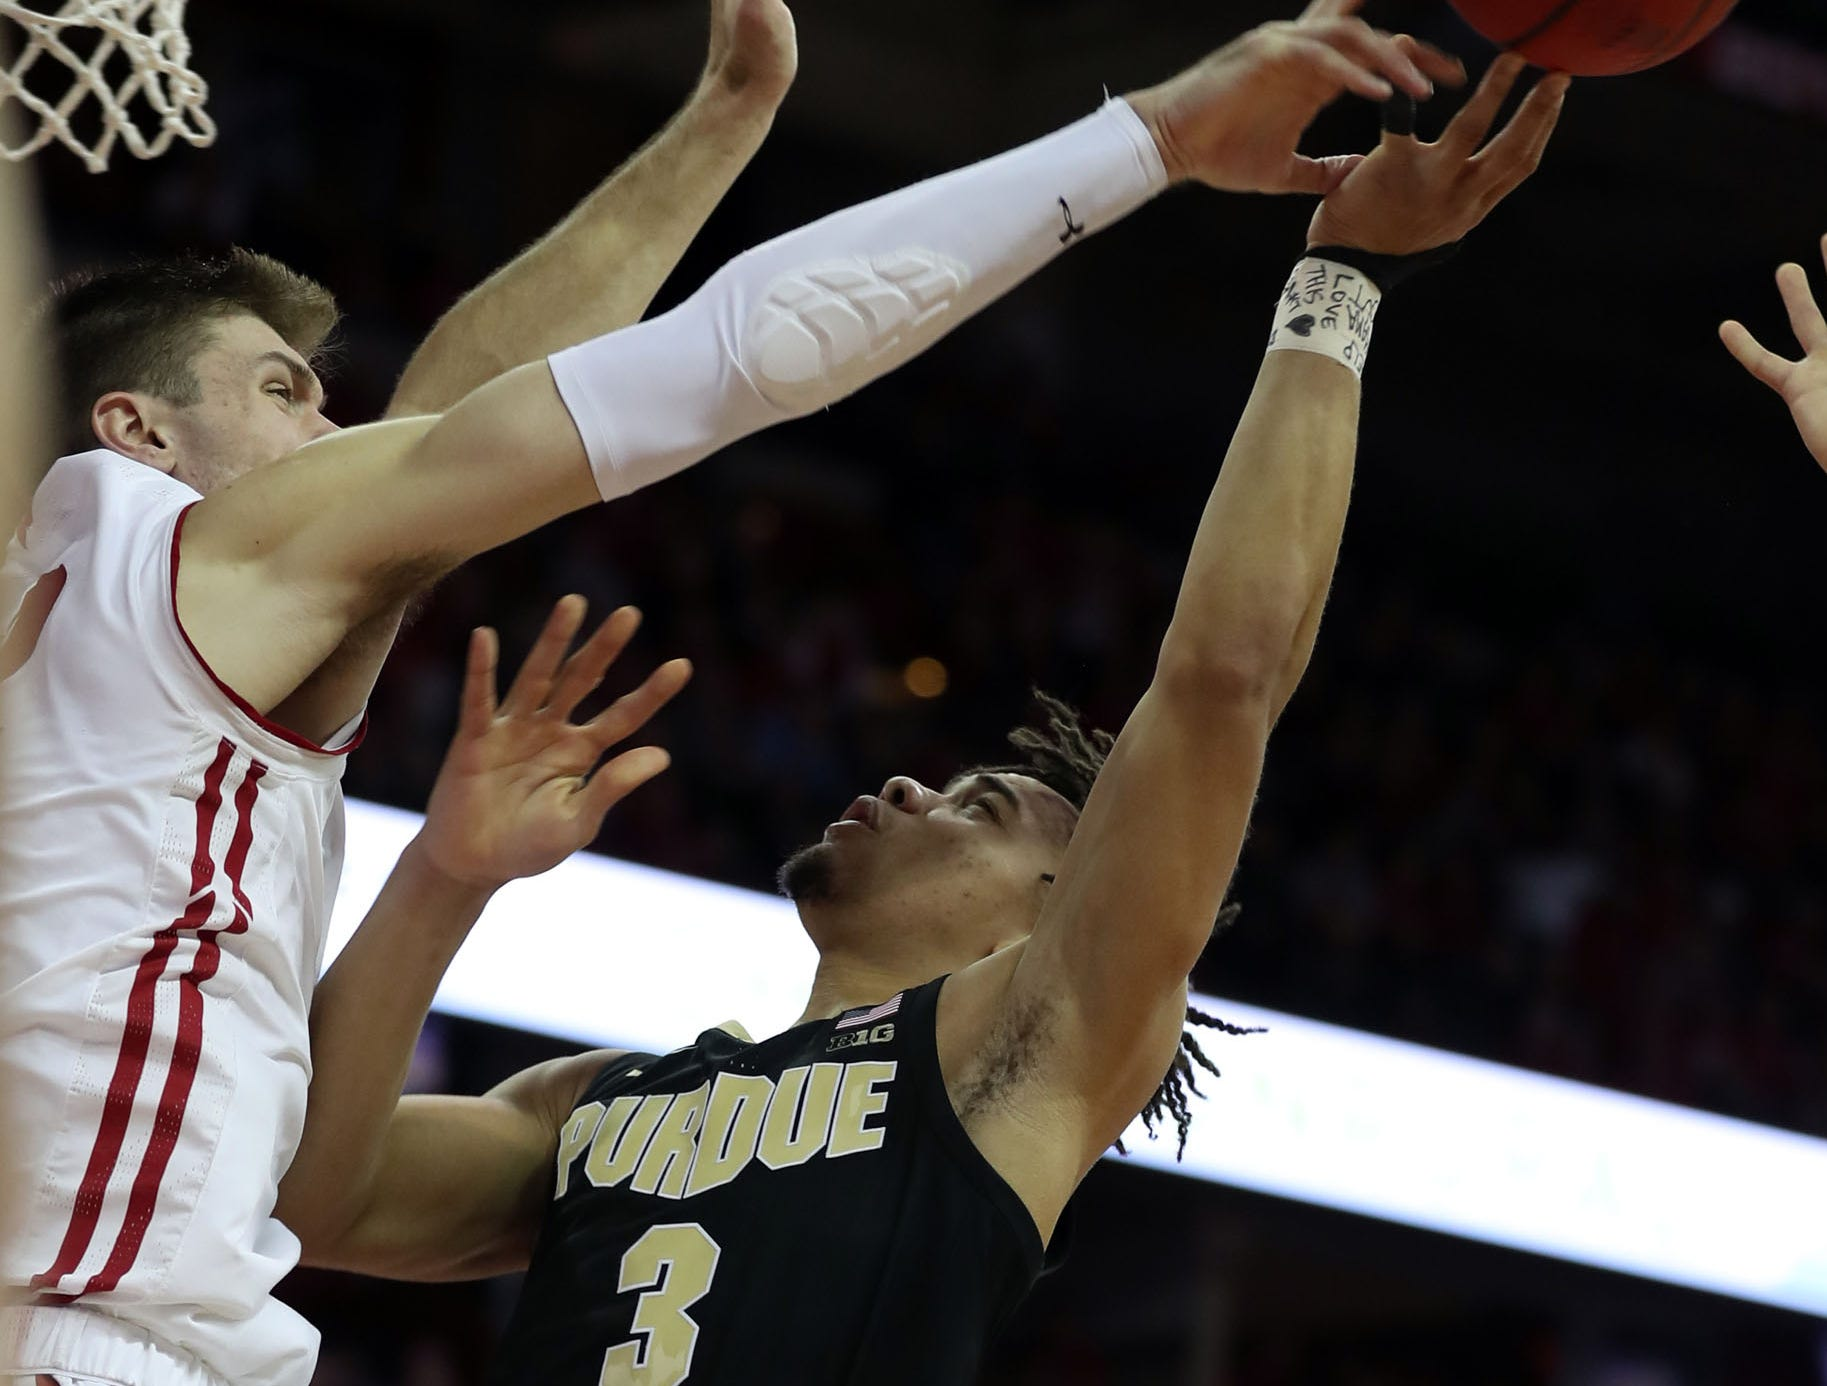 Jan 11, 2019; Madison, WI, USA; Wisconsin Badgers forward Ethan Happ (22) blocks an attempted shot by Purdue Boilermakers guard Carsen Edwards (3) during the first half at the Kohl Center. Mandatory Credit: Mary Langenfeld-USA TODAY Sports